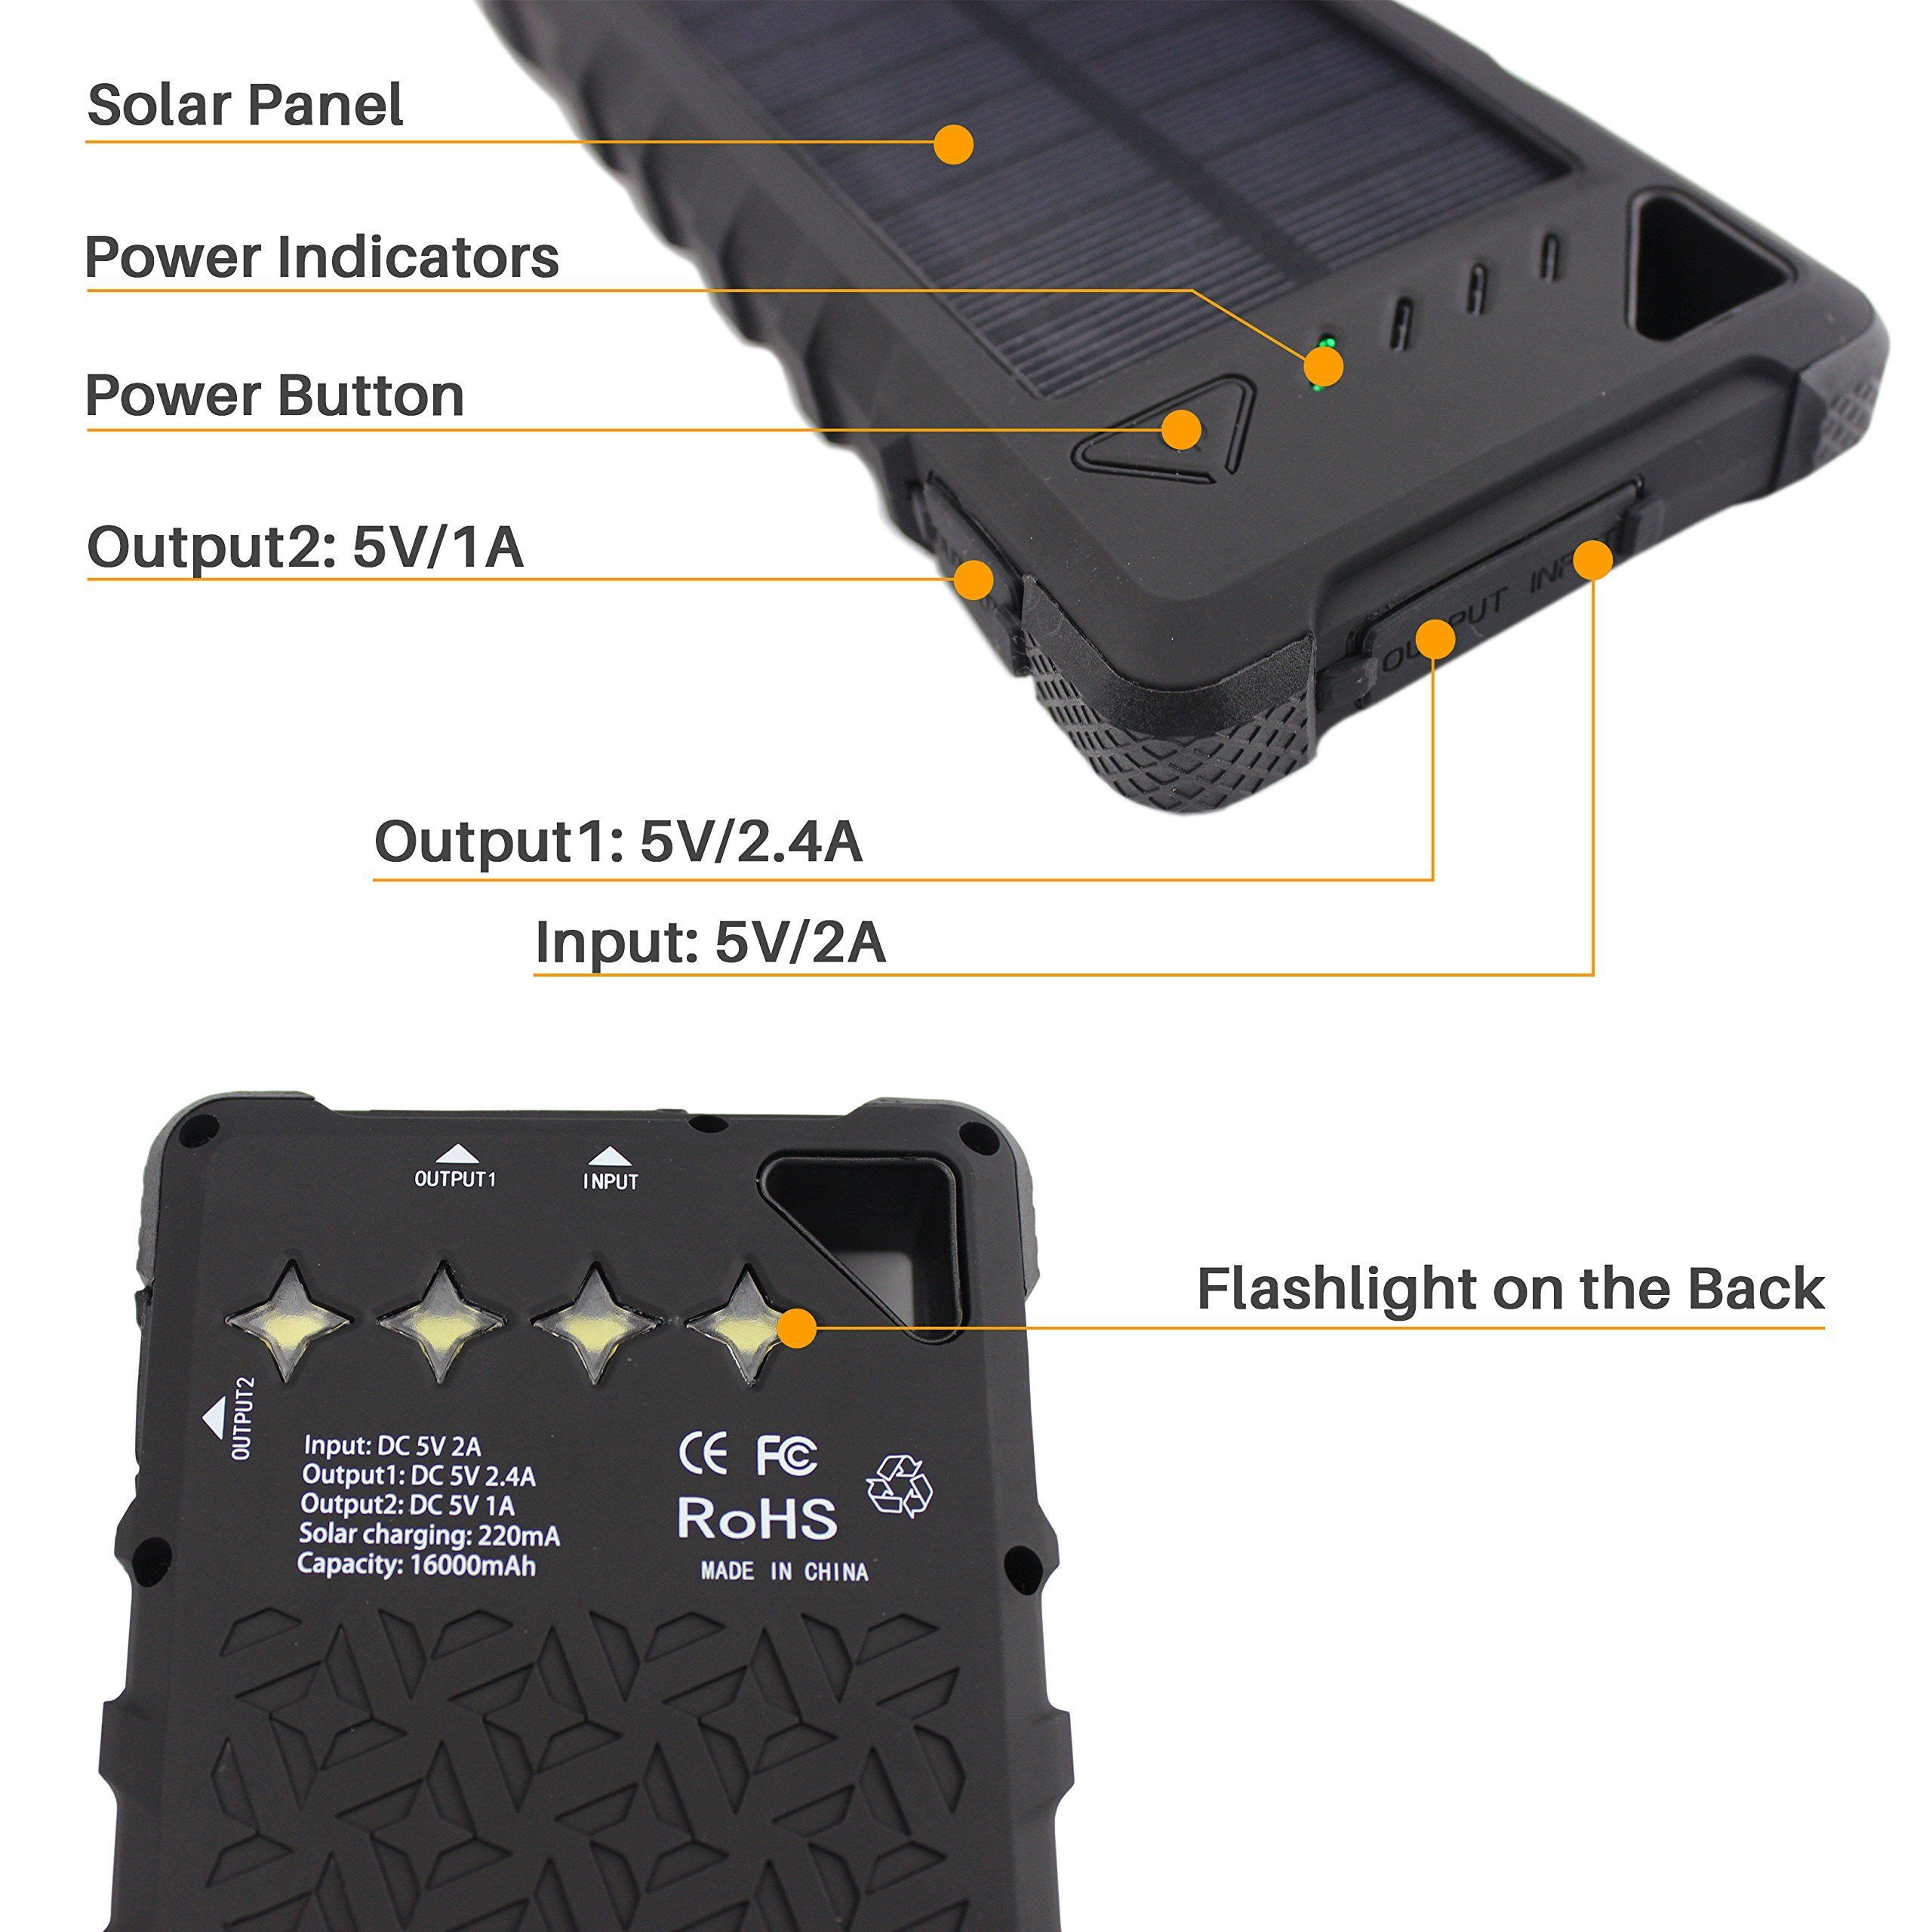 Solar Charger Sunlit Portable Power Bank With Flashlight All Weather Condition Shockproof Dustproof Portable Power Bank Solar Charger Portable Solar Charger